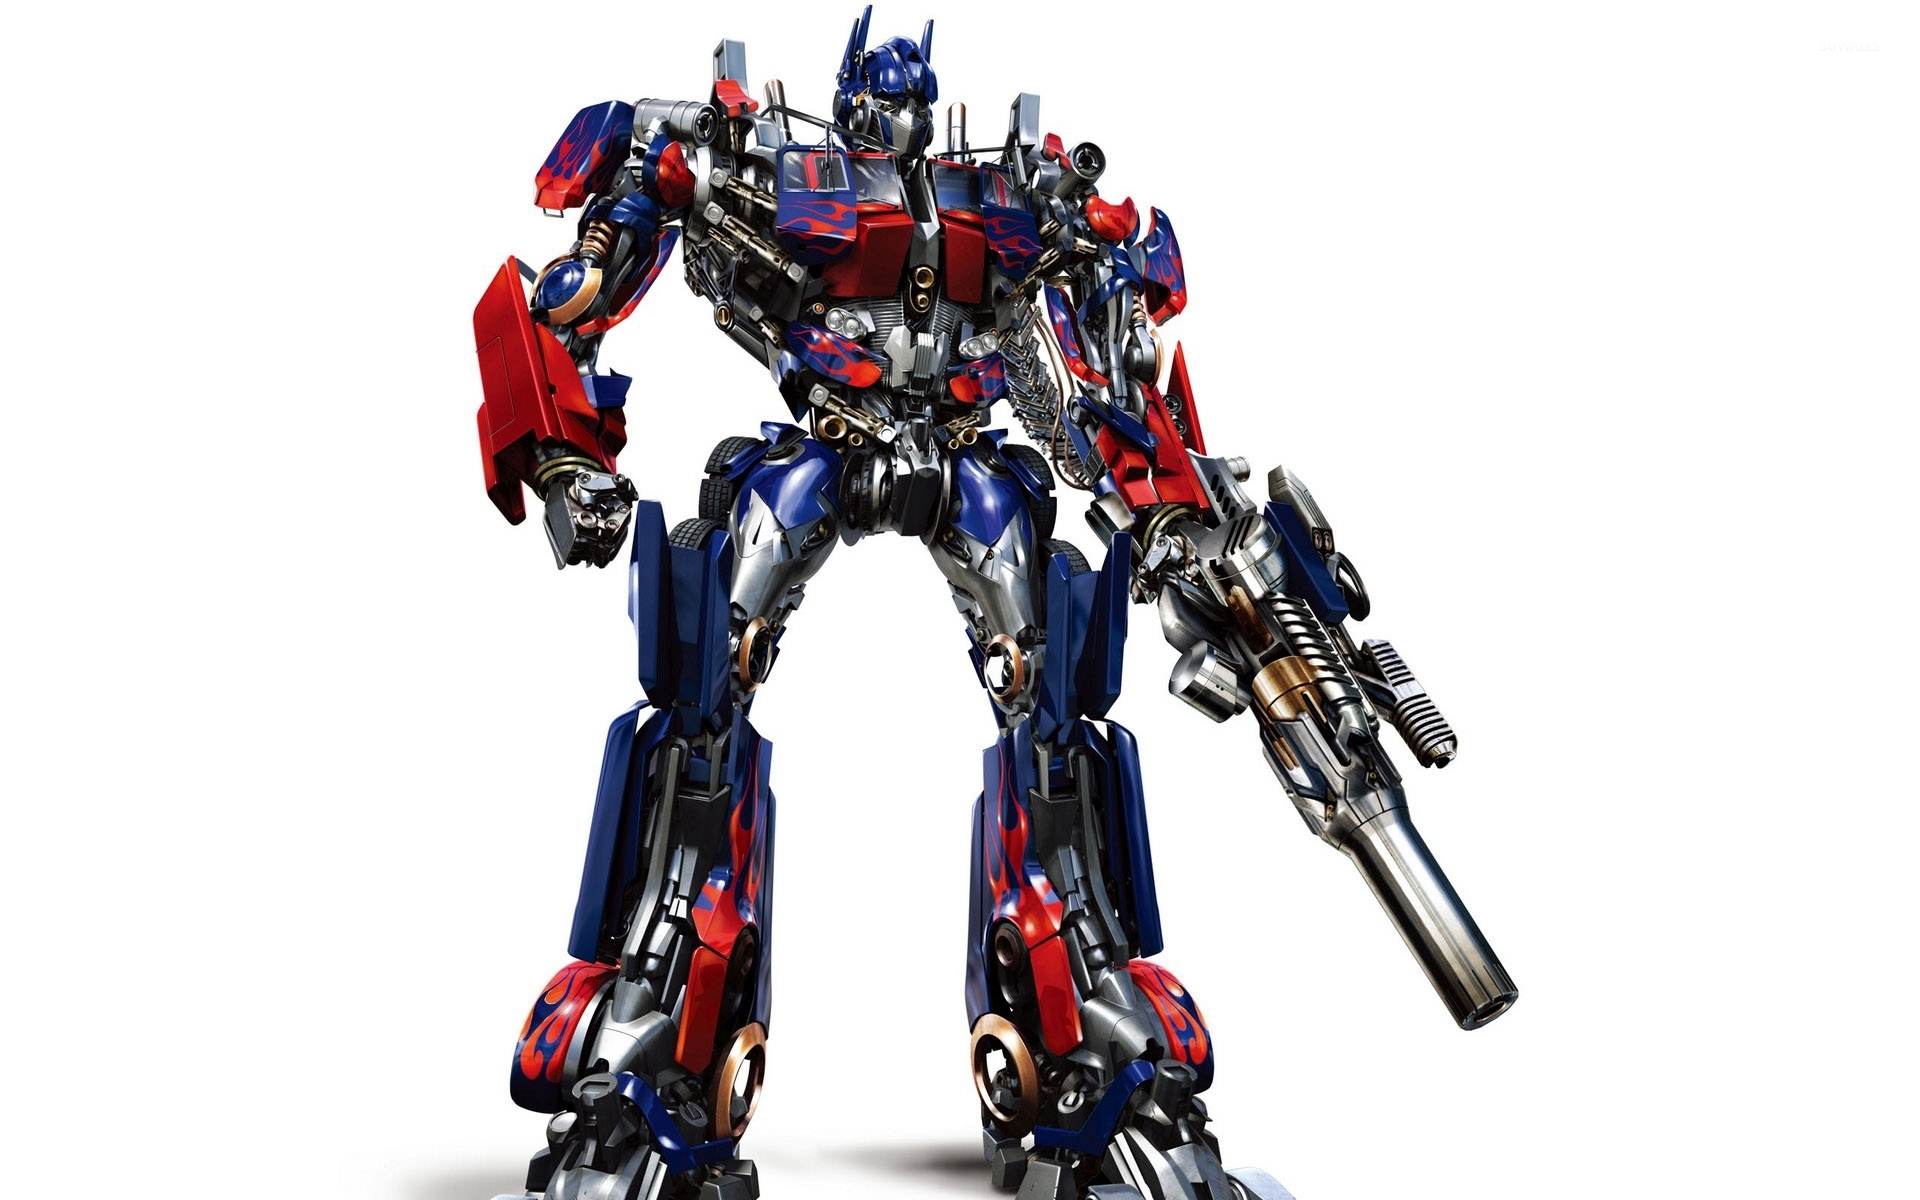 optimus prime - transformers [2] wallpaper - movie wallpapers - #34621